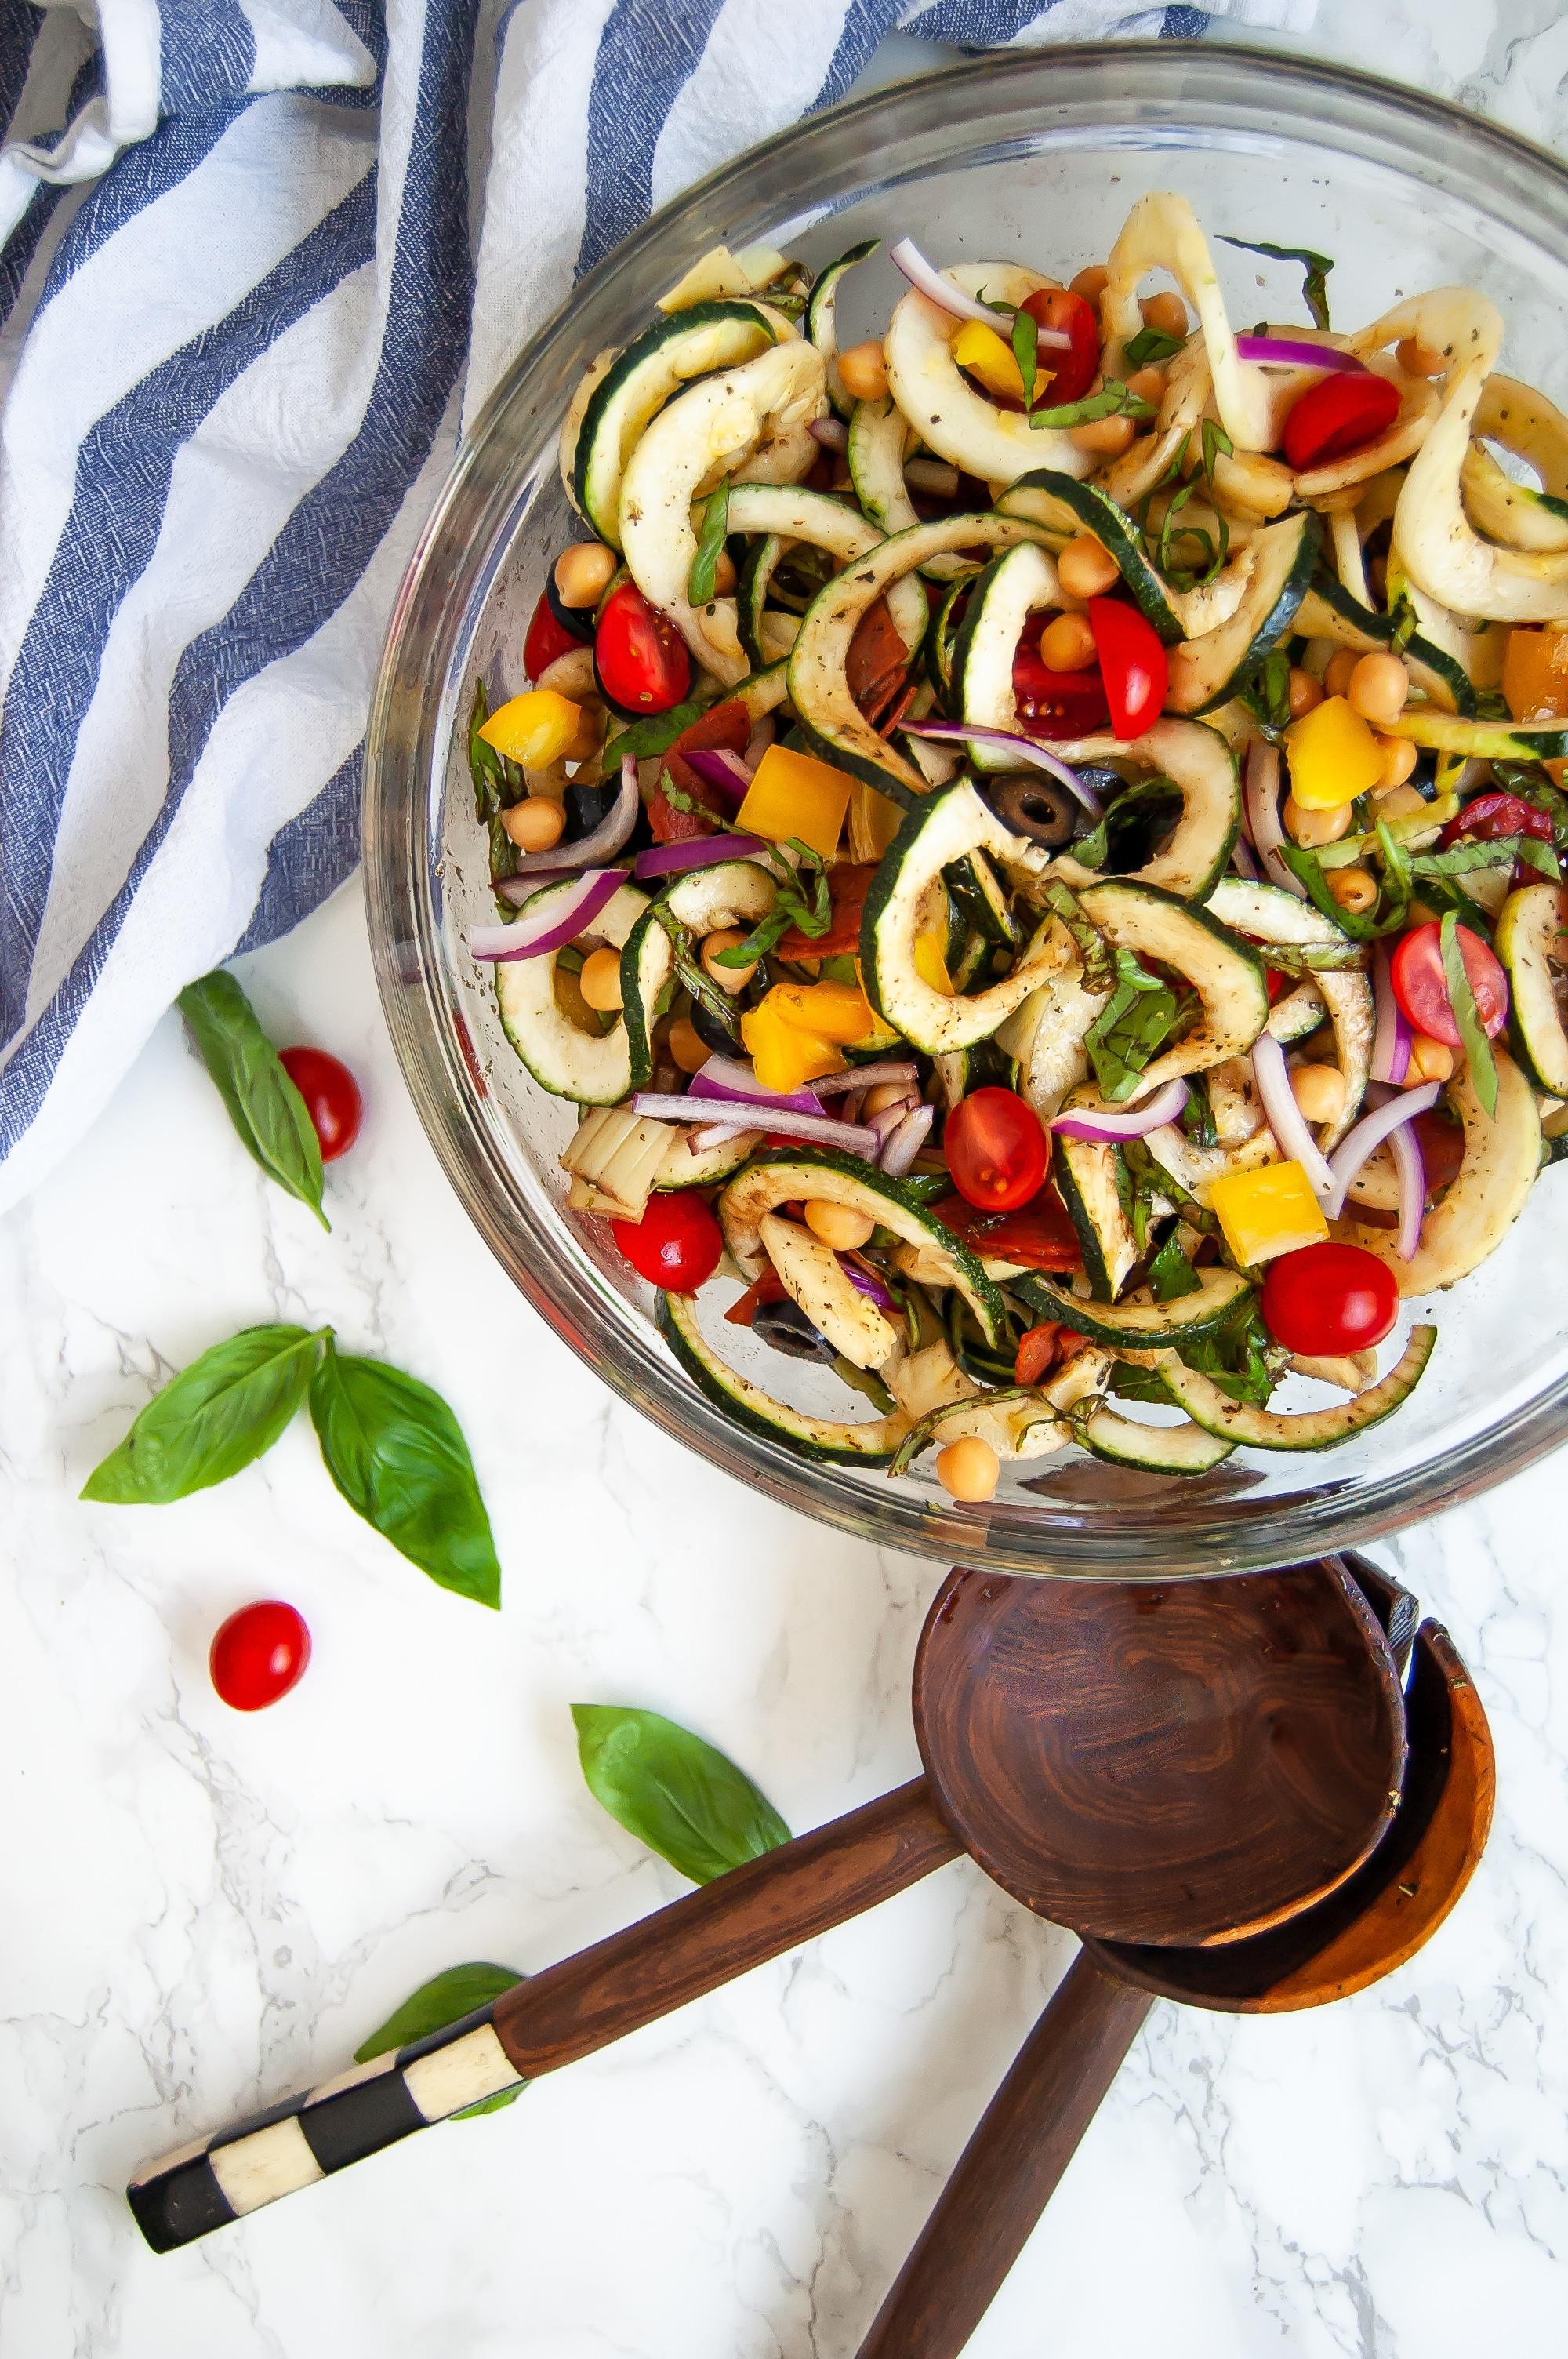 Antipasto salad gets a light and fresh take with this zucchini noodle antipasto salad. A fun zucchini noodle pasta salad, it's perfect with any healthy summer meal.